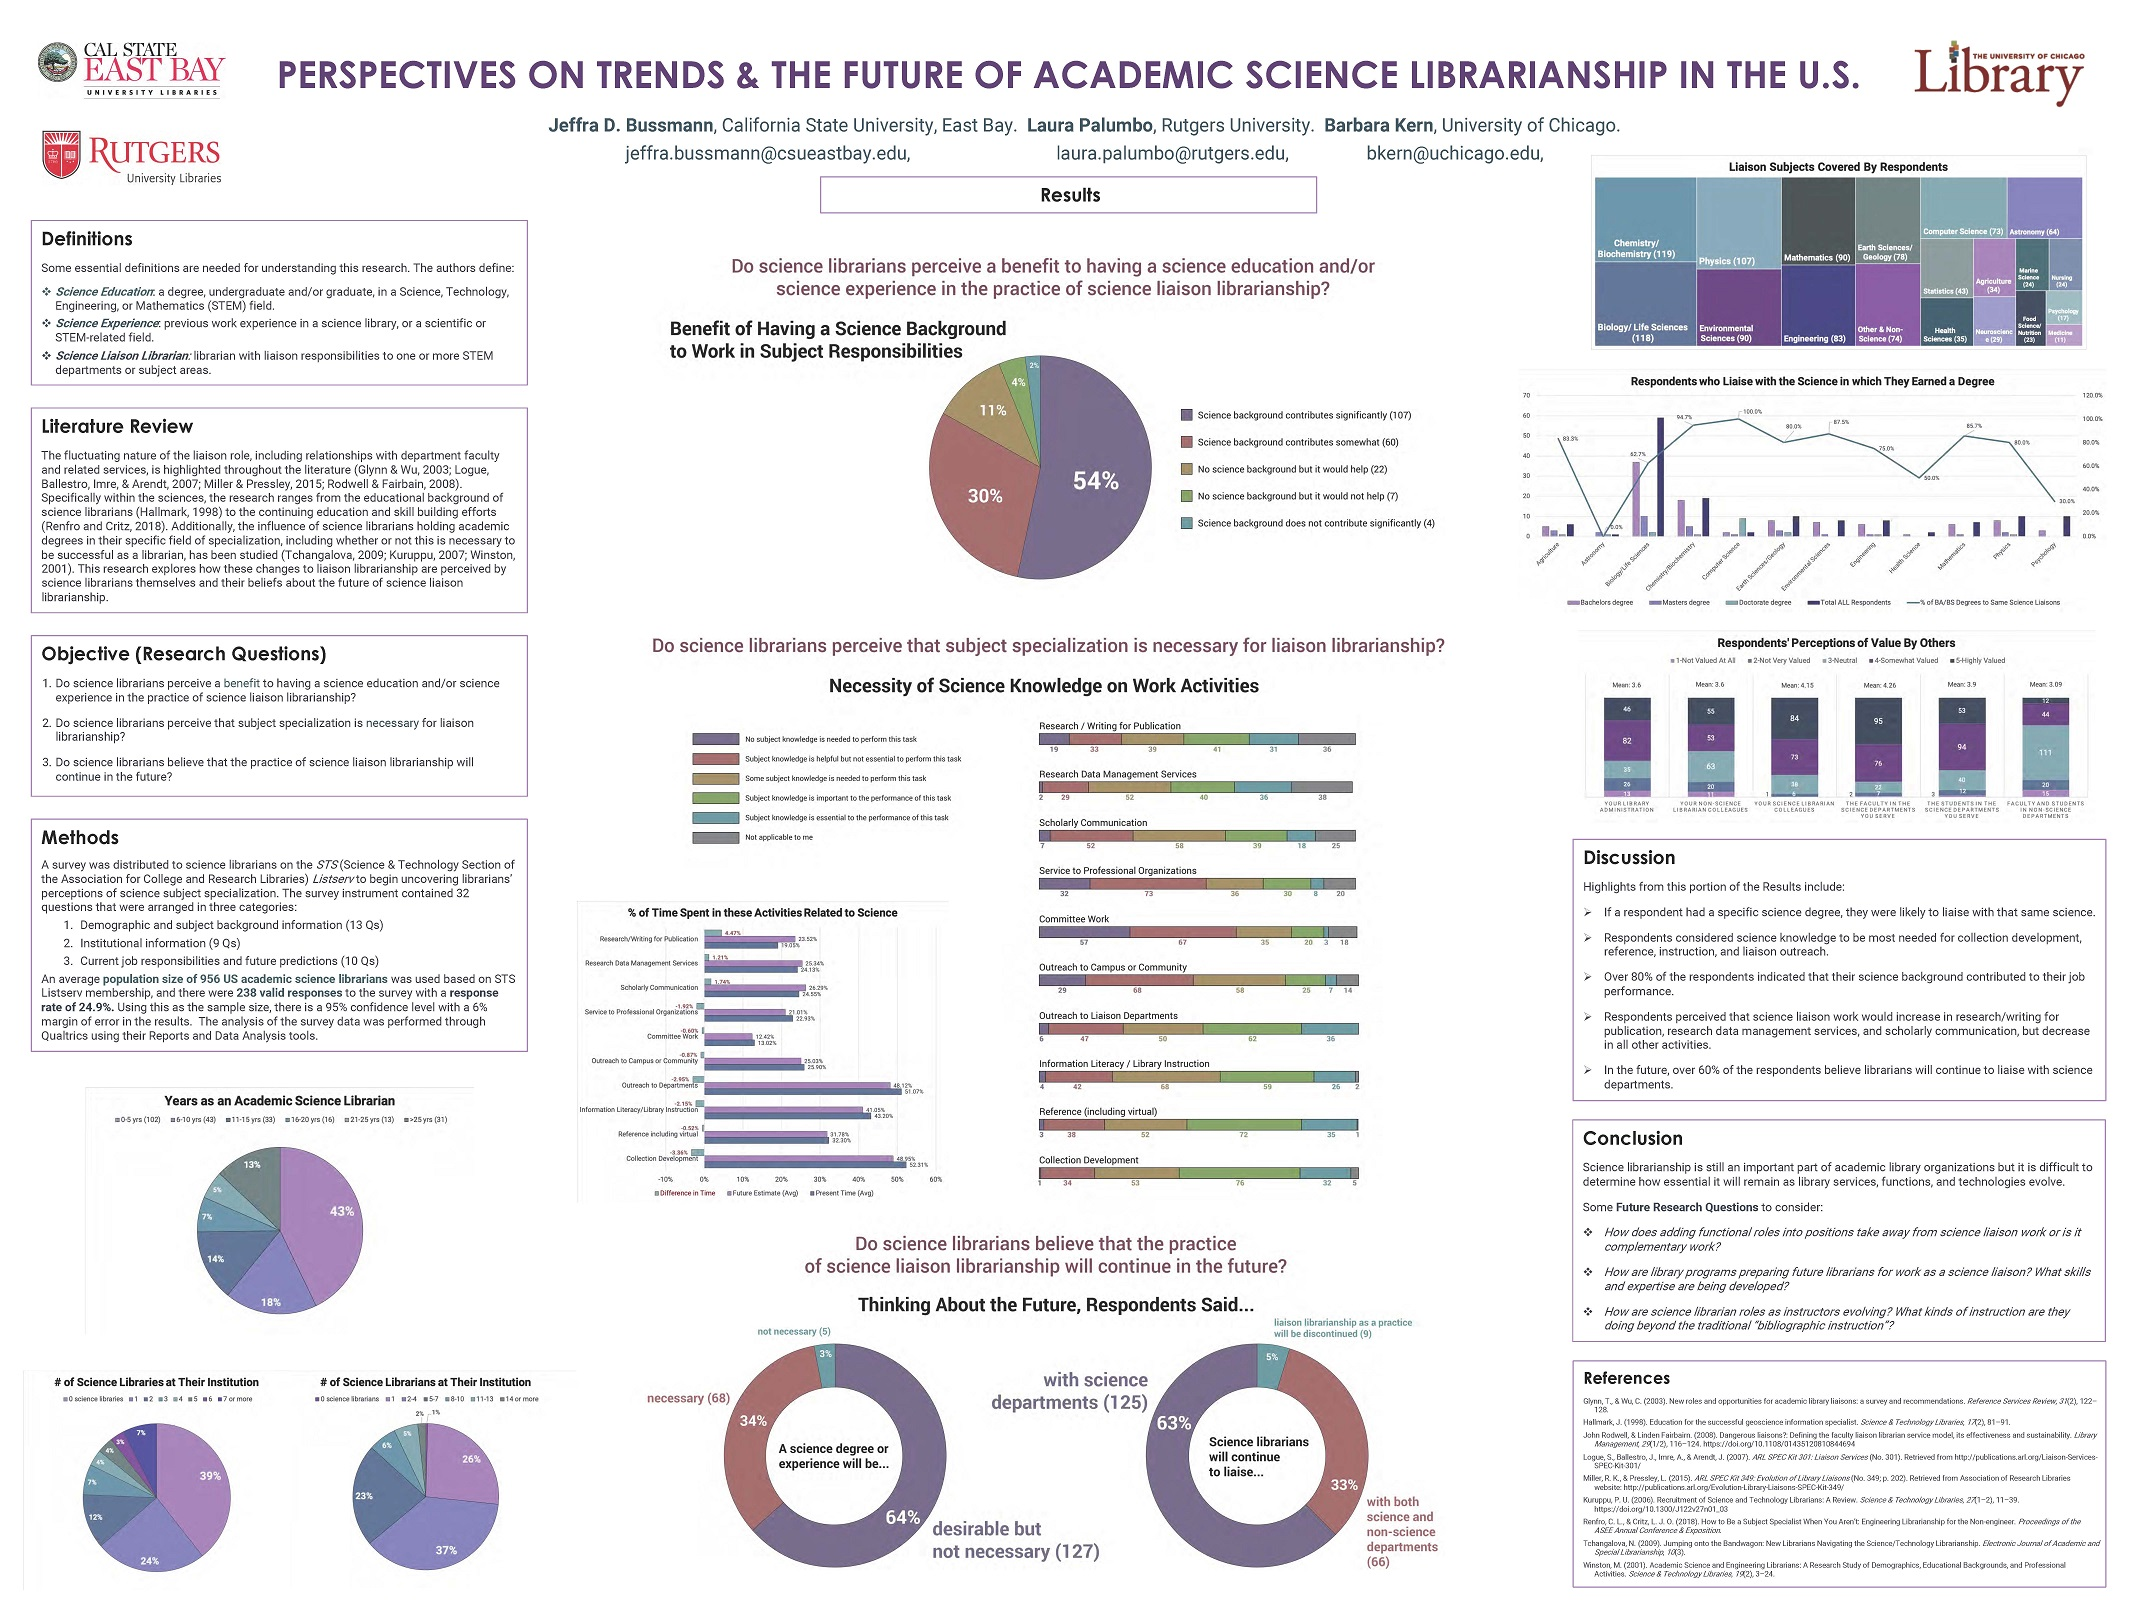 Perspectives on Trends and the Future of Academic Science Librarianship in the US by Jeffra D. Bussmann, CSU East Bay, Laura Palumbo, Rutgers University, and Barbara Kern, University of Chicago